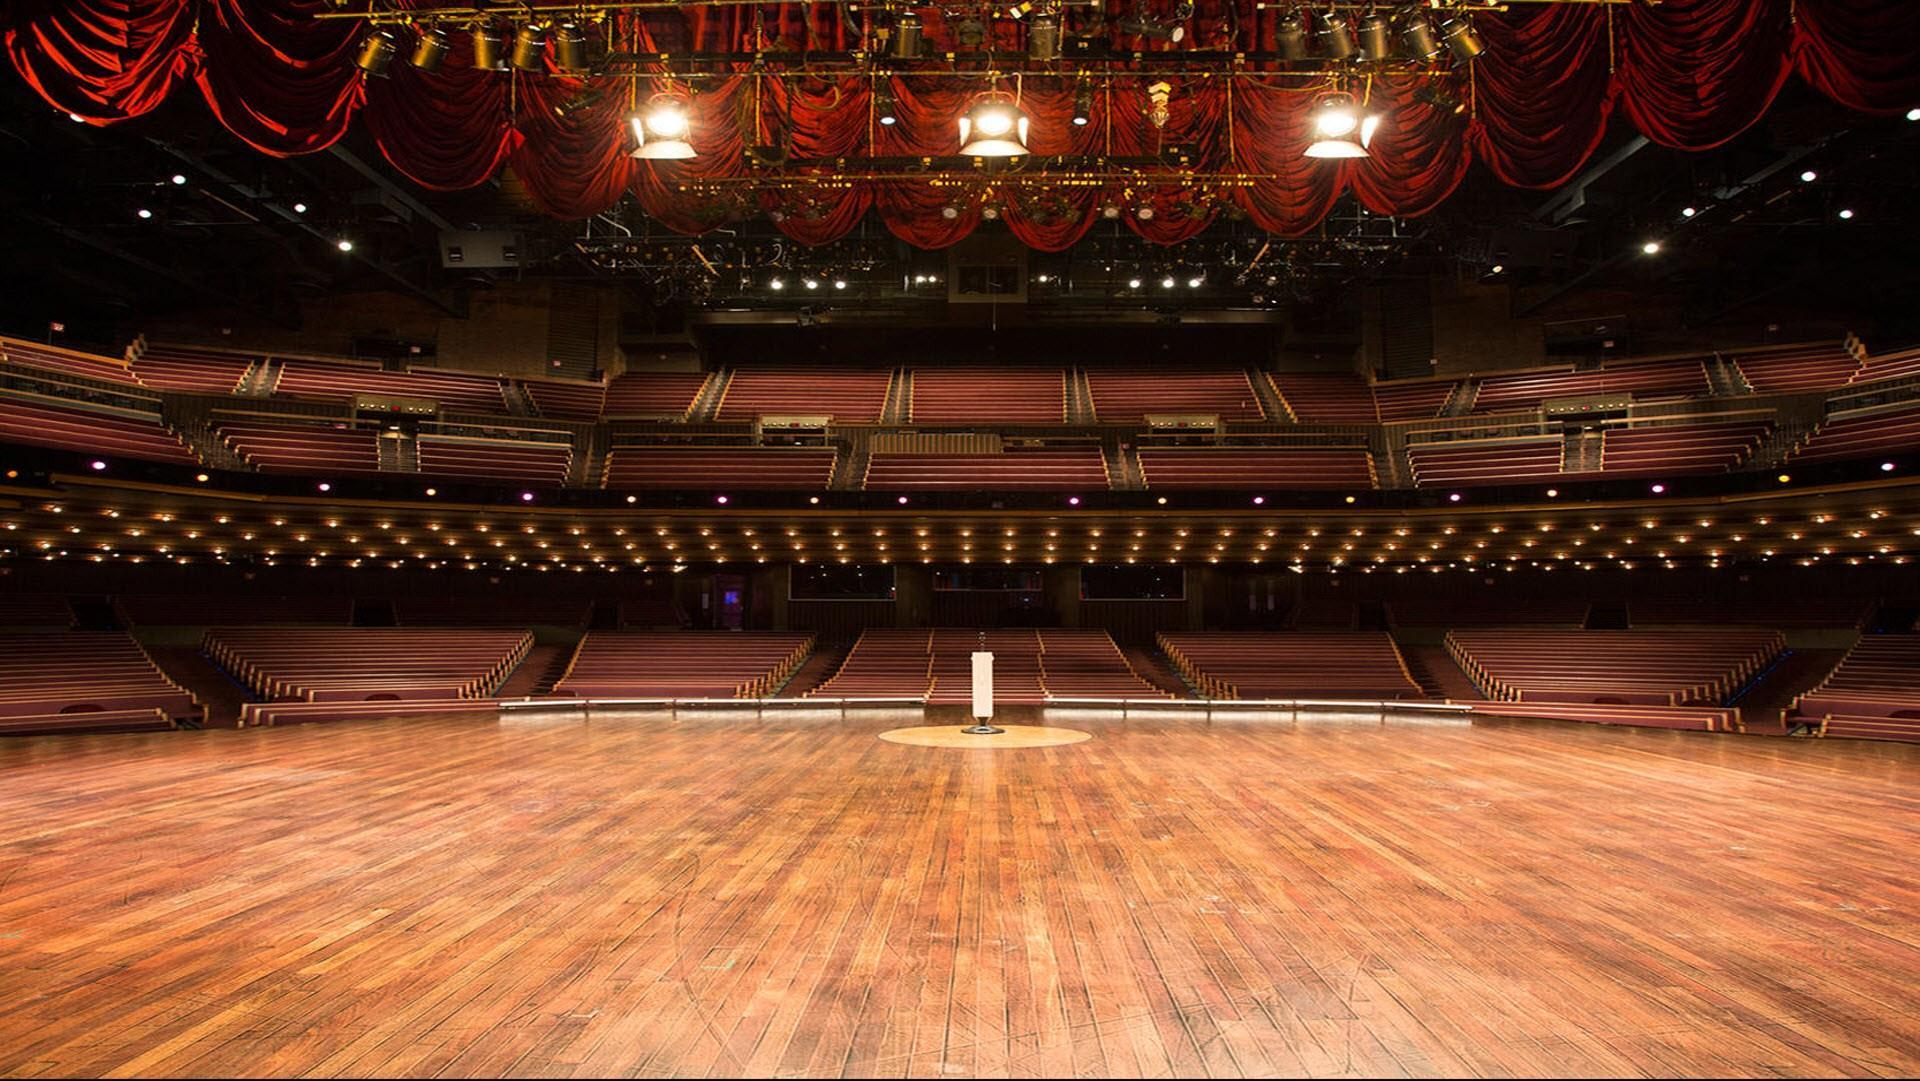 meetings and events at grand ole opry, nashville, tn, us